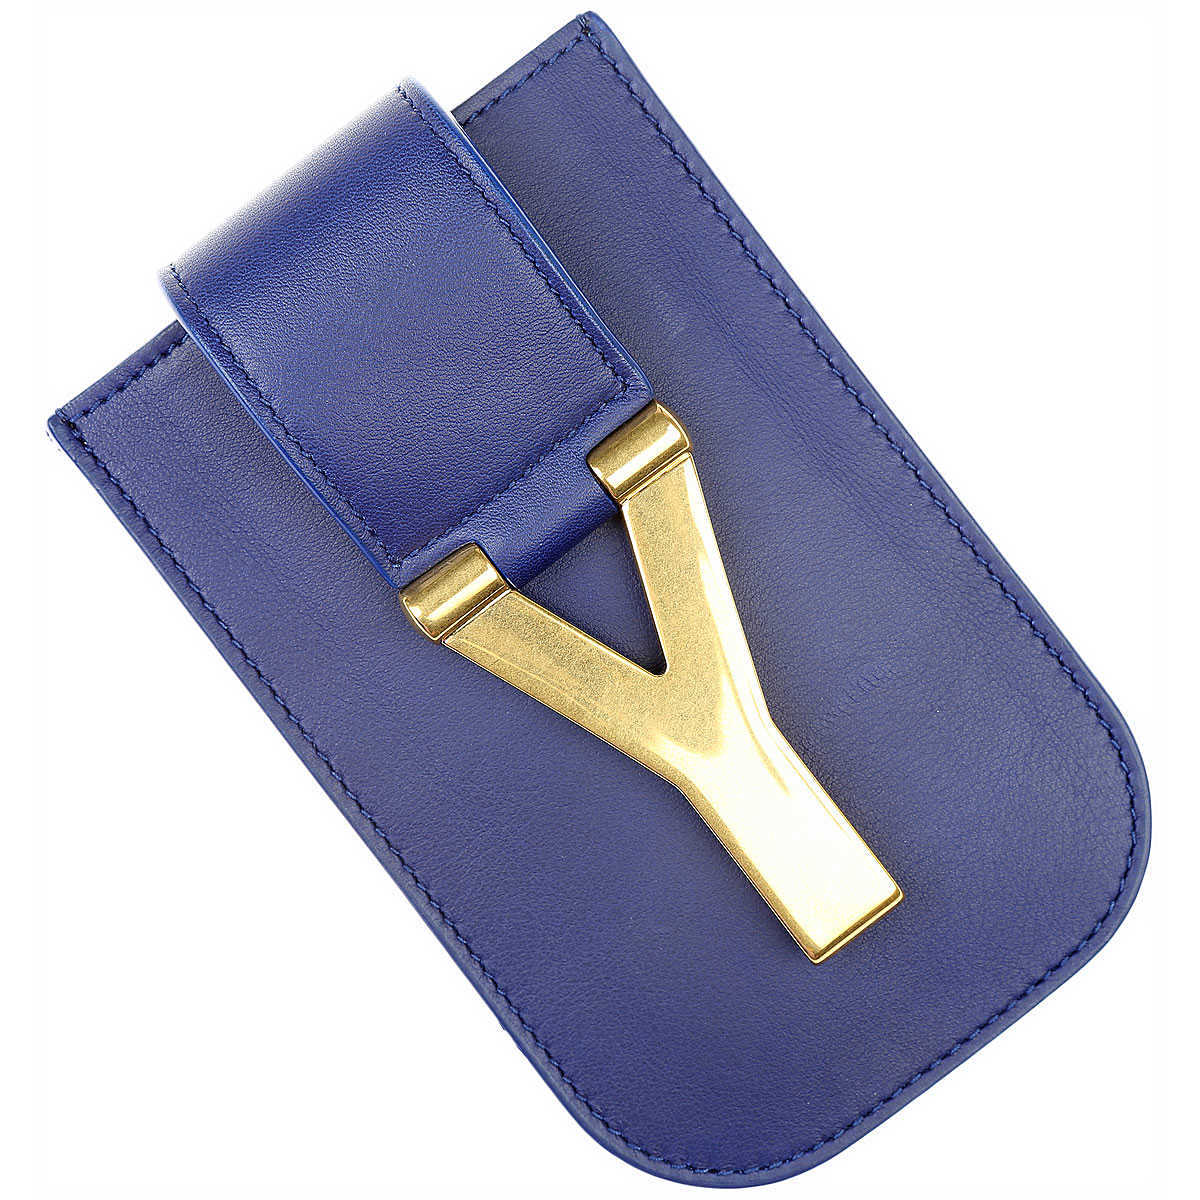 Yves Saint Laurent Womens Wallets On Sale in Outlet Royal Blue DK - GOOFASH - Womens WALLETS